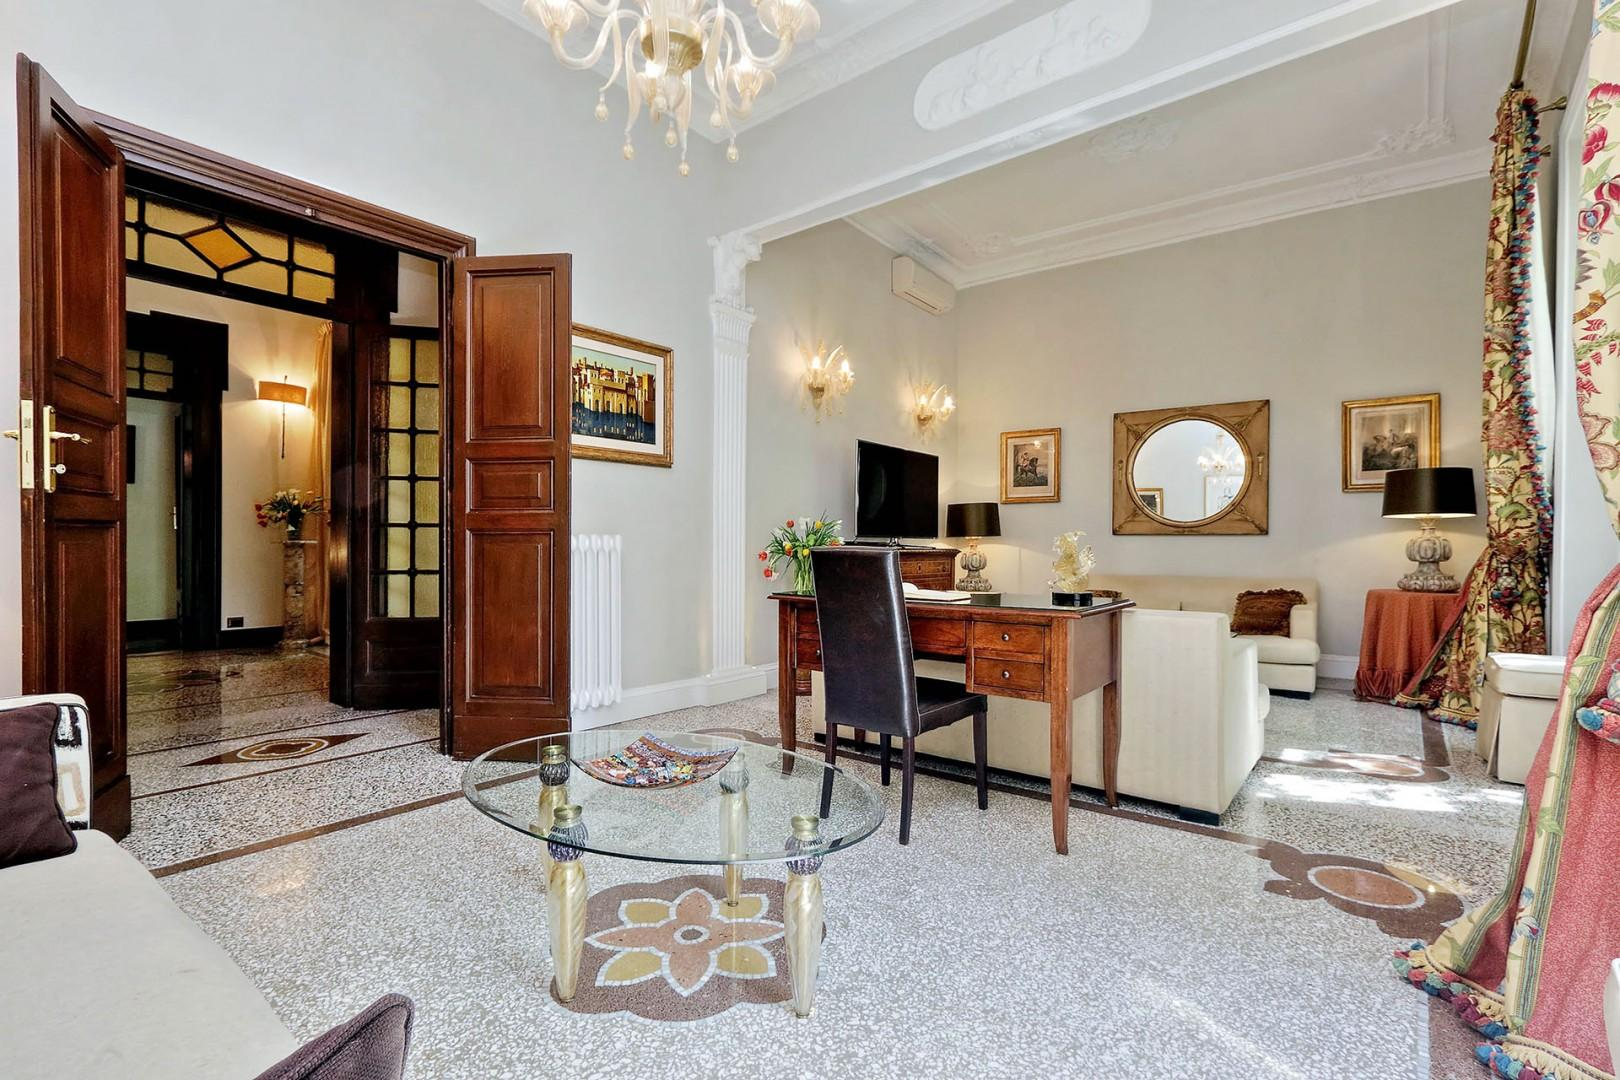 There are two seating areas in the living room of this elegant, tastefully appointed apartment.